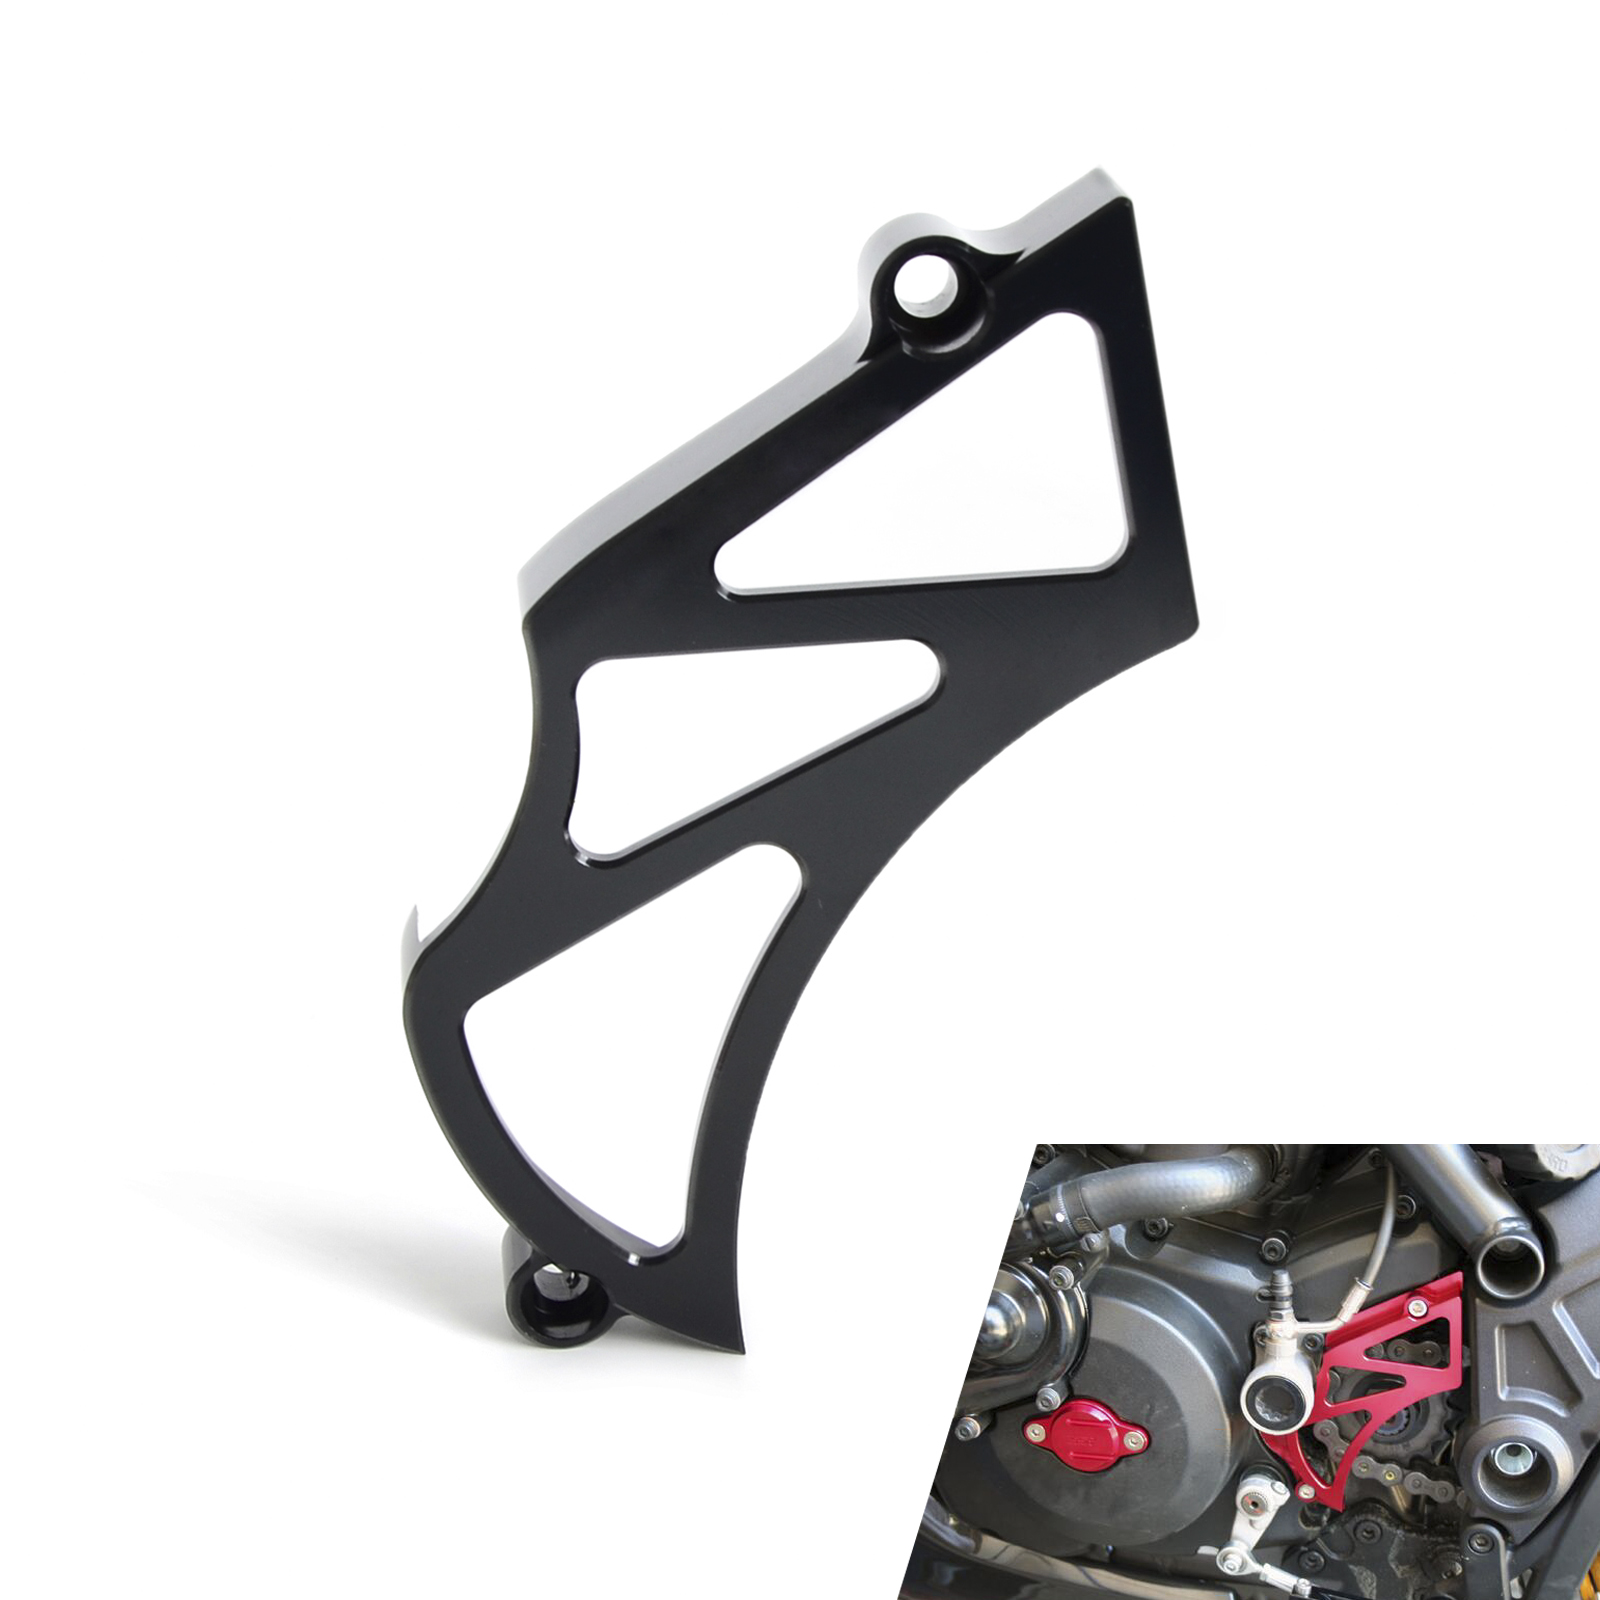 NICECNC Motorcycle Front Sprocket Cover Chain Guard Cover for Ducati Diavel Carbon 2011 2016 696 796